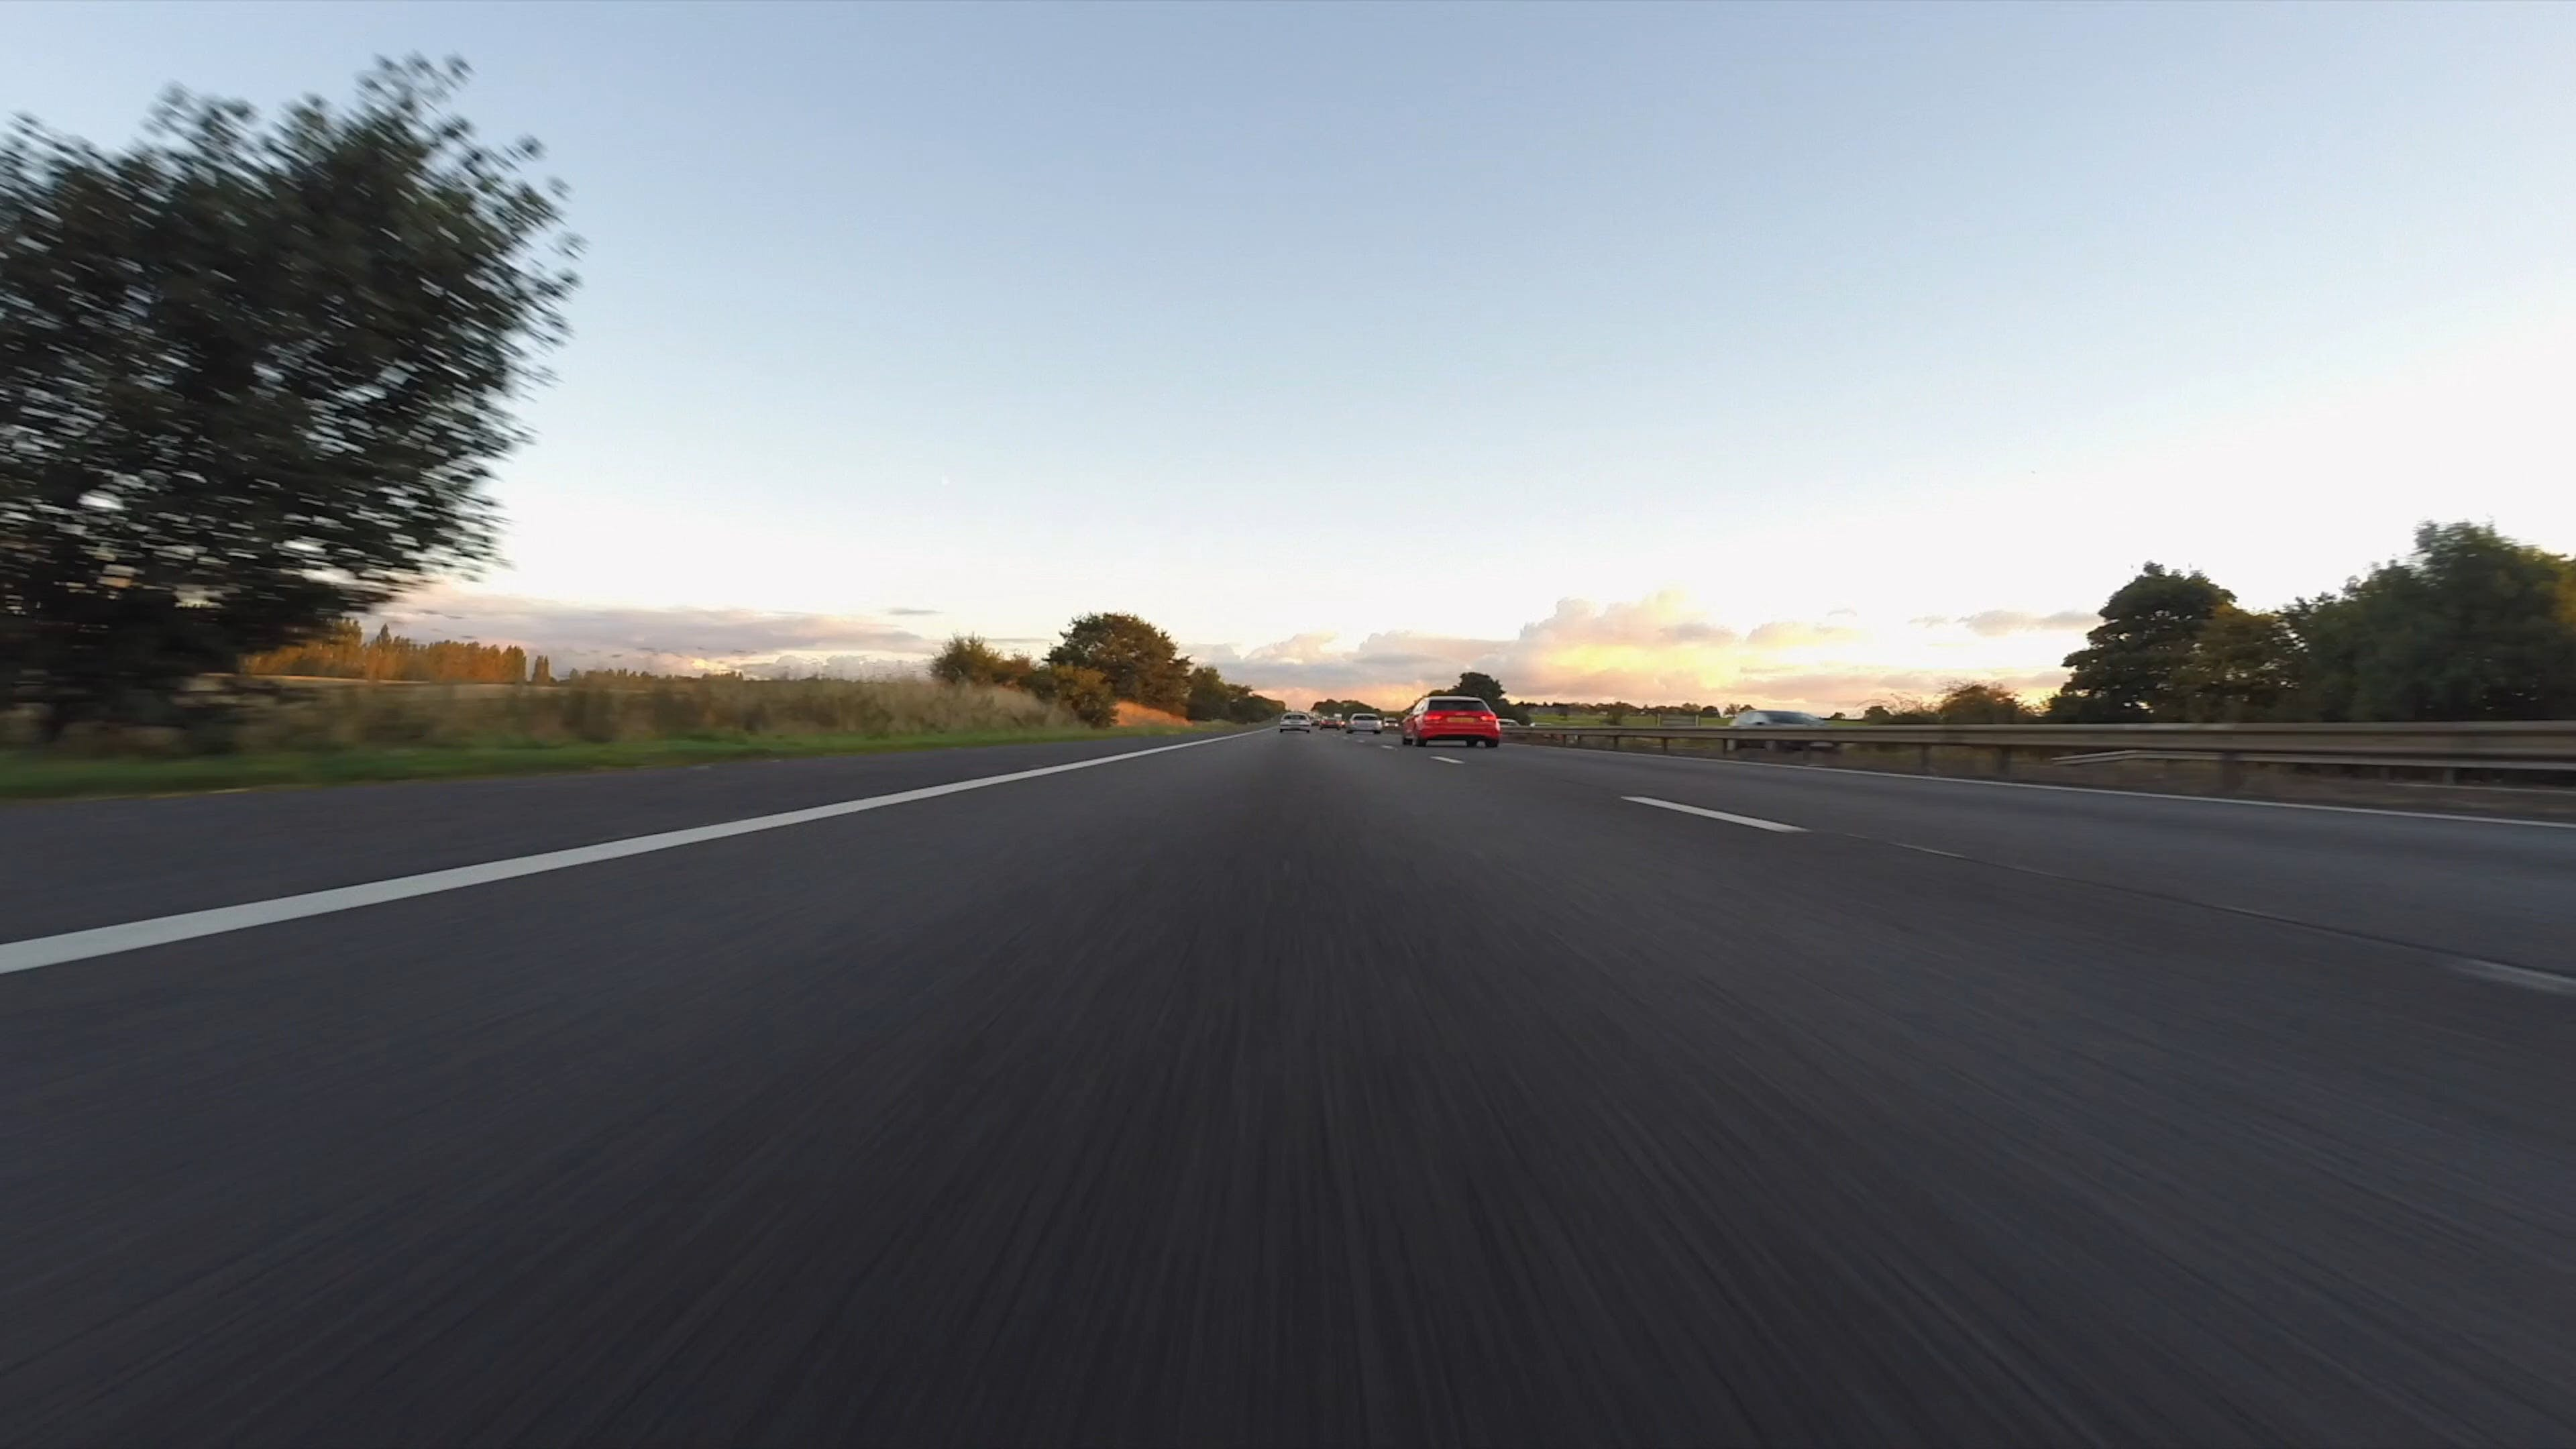 Vehicles Travelling In Timelapse Mode